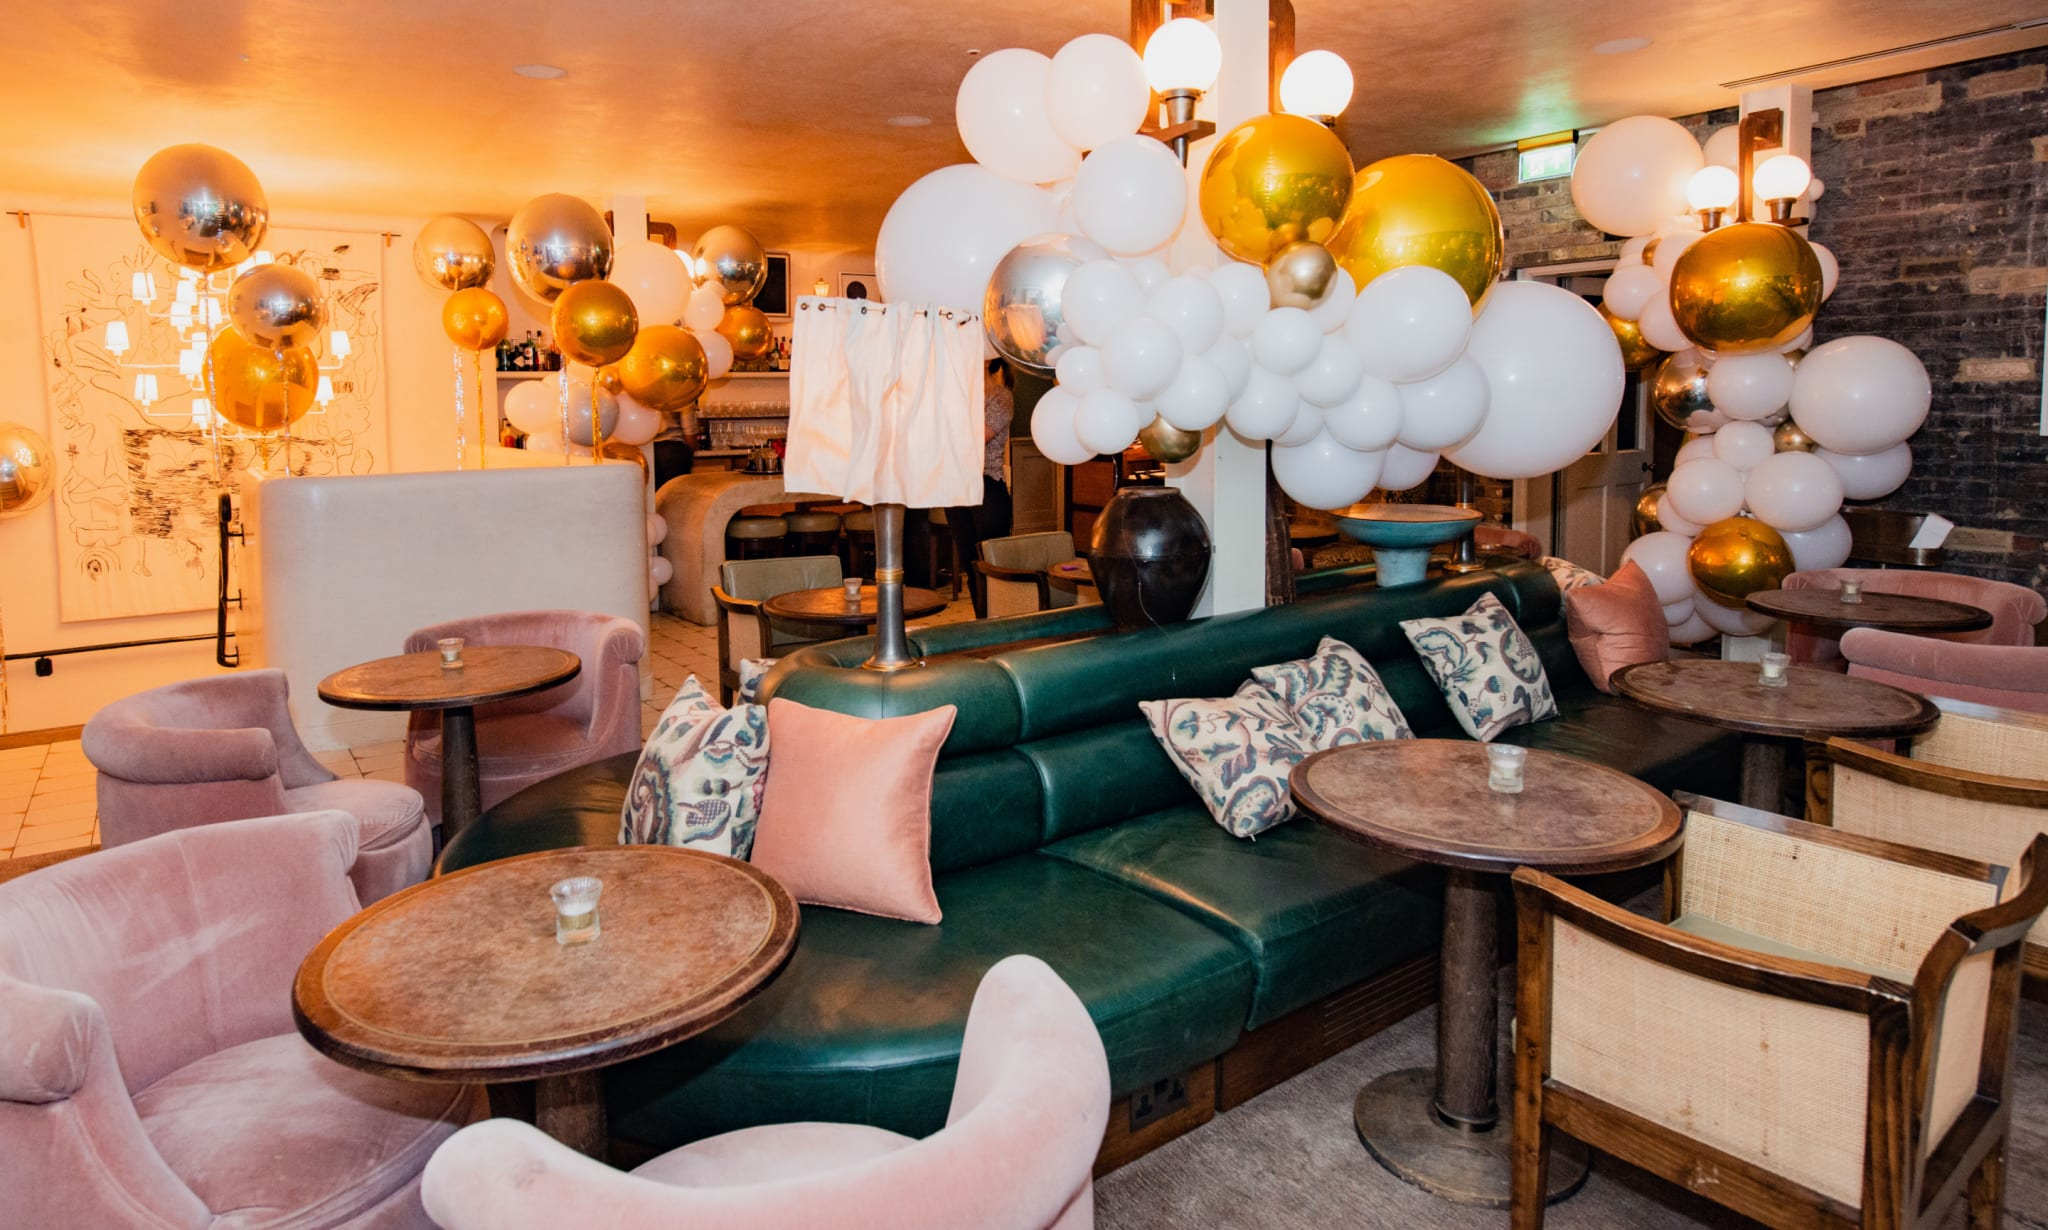 A lounge-like interior full of balloons.